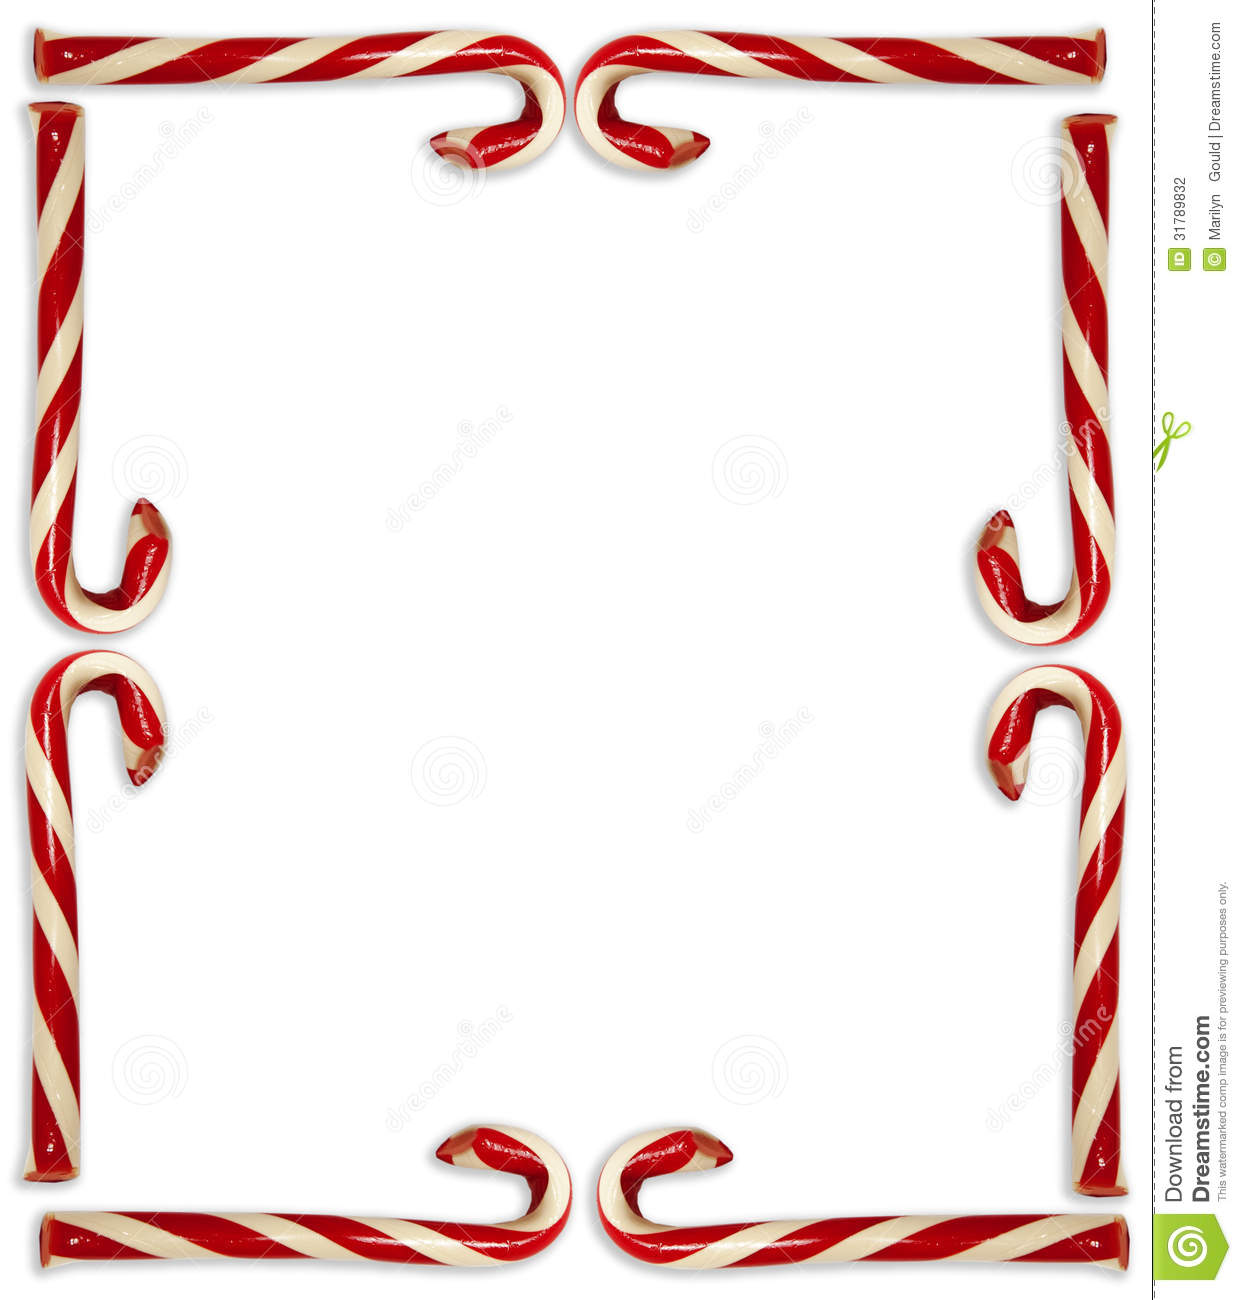 And White Striped Candy Canes Arranged In Border On White Background